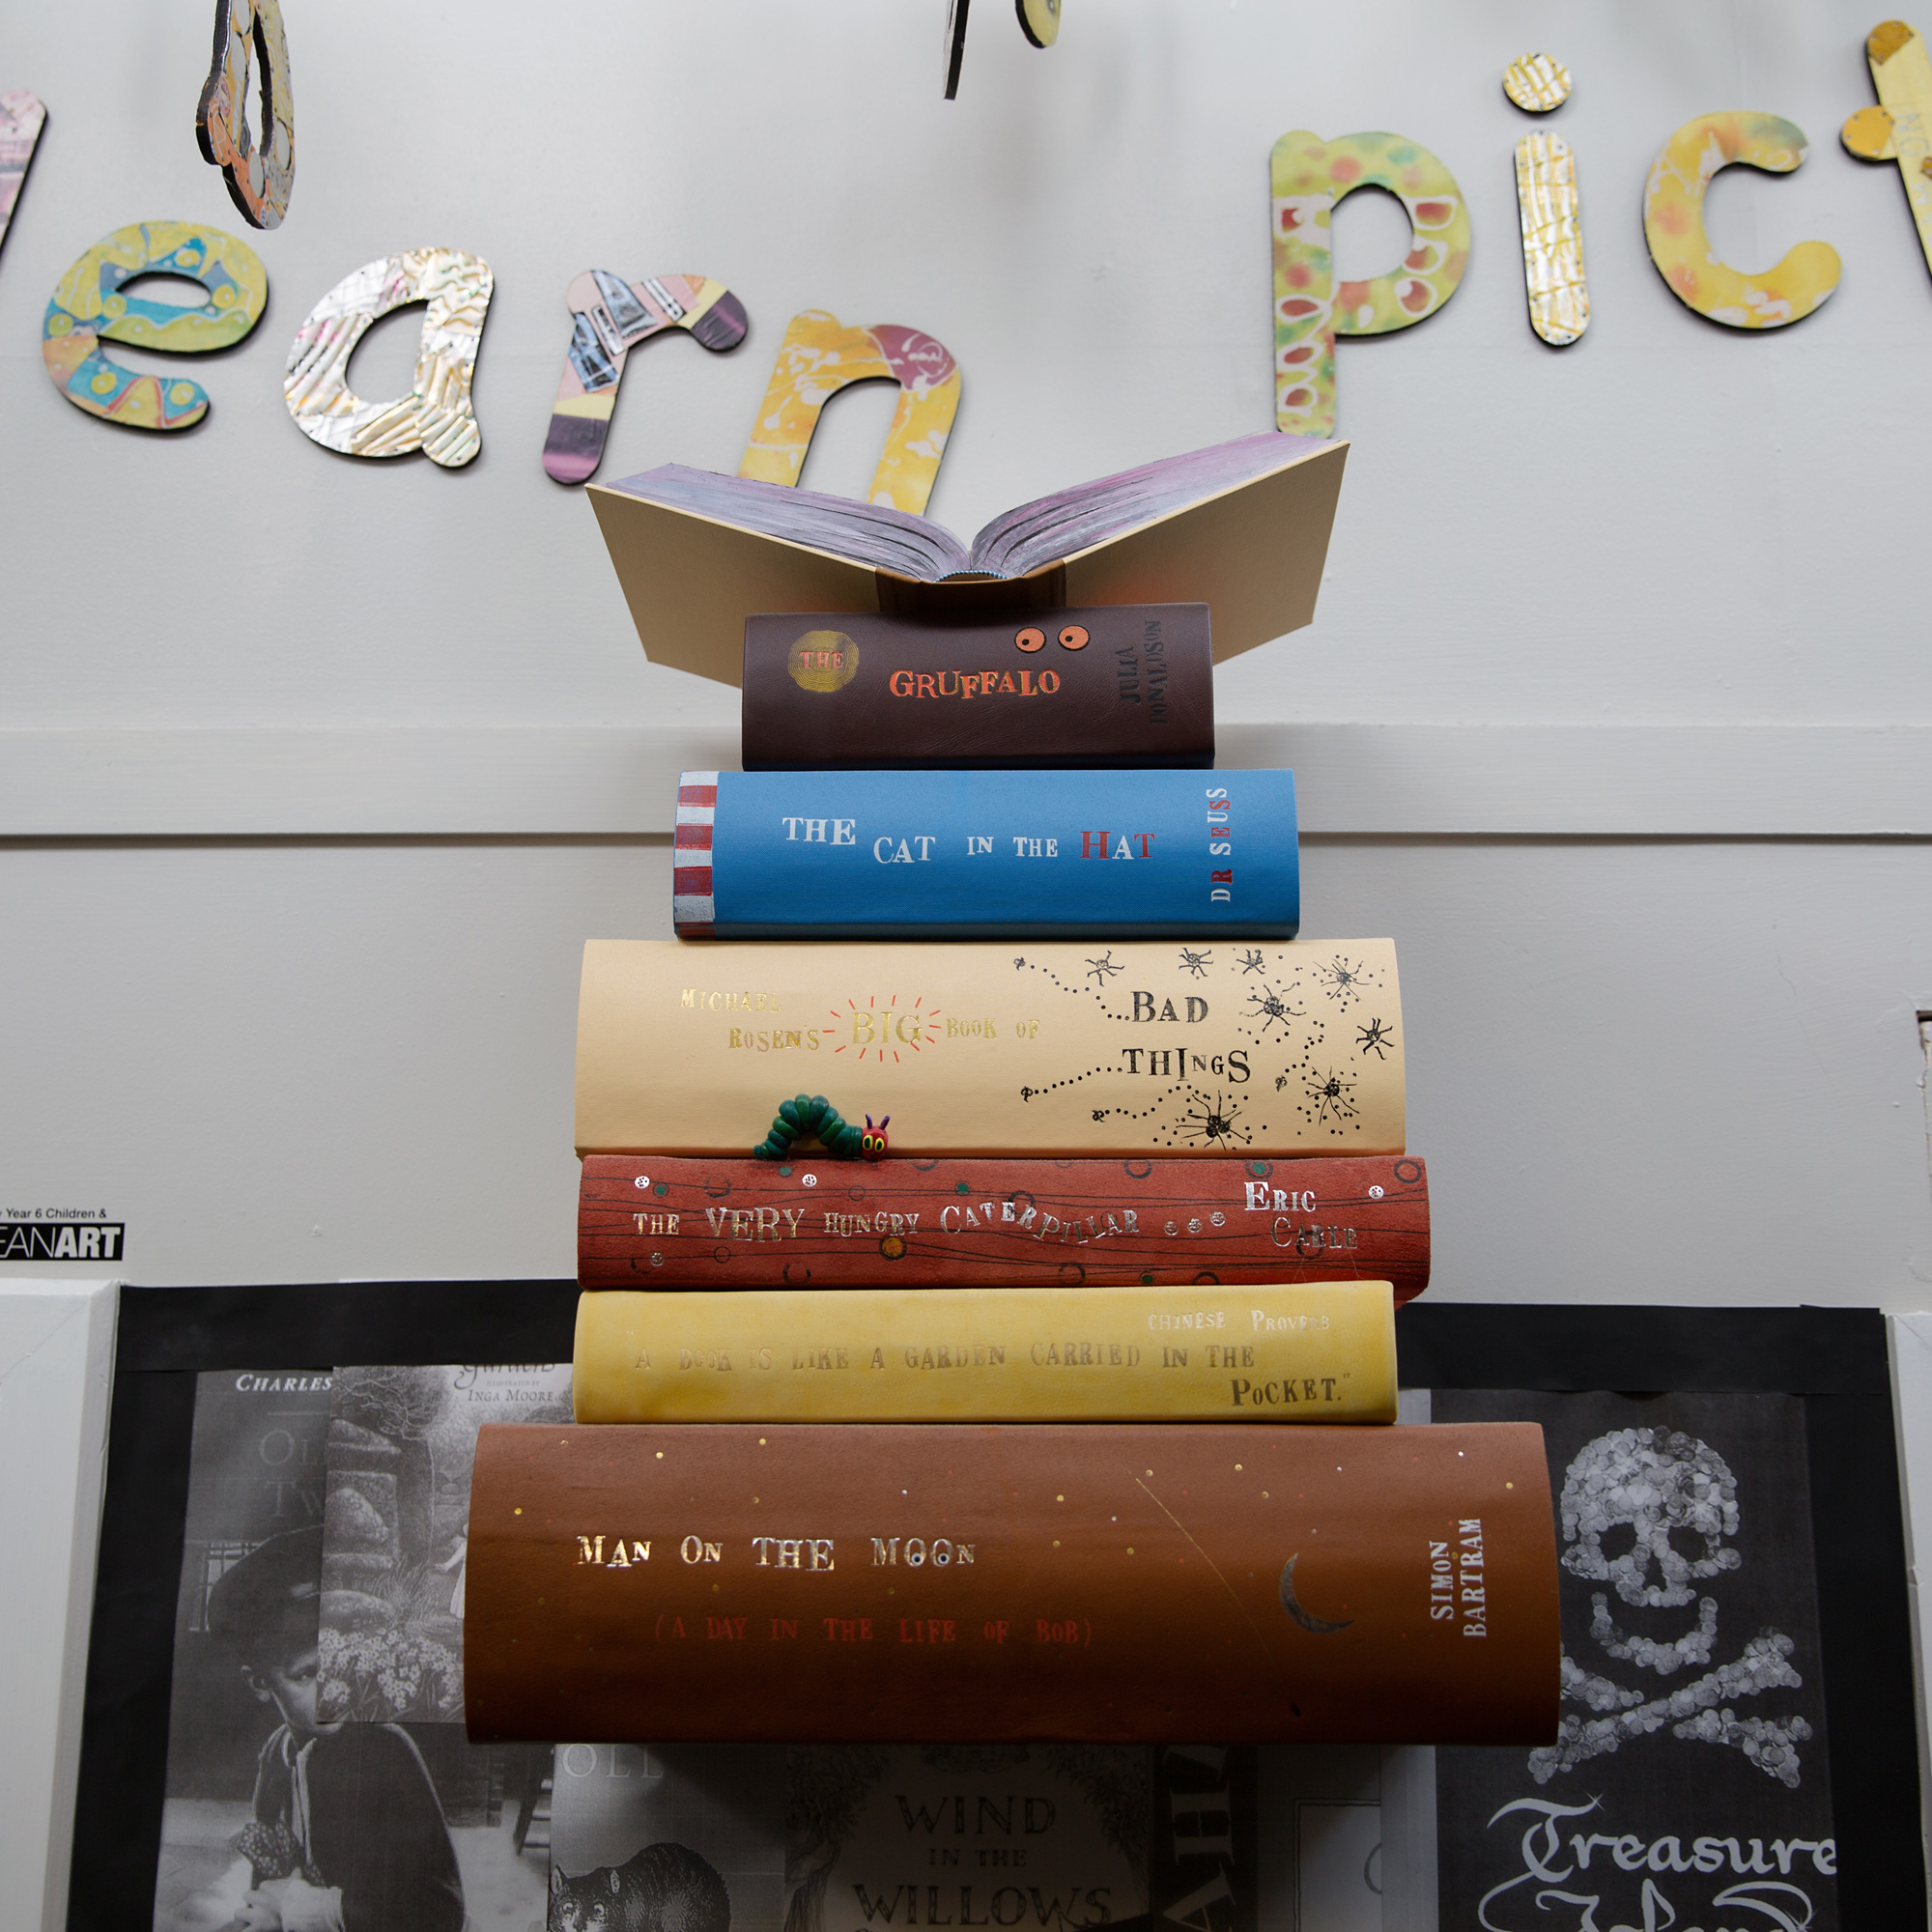 Art installation in the shape of s book pile encourages reading